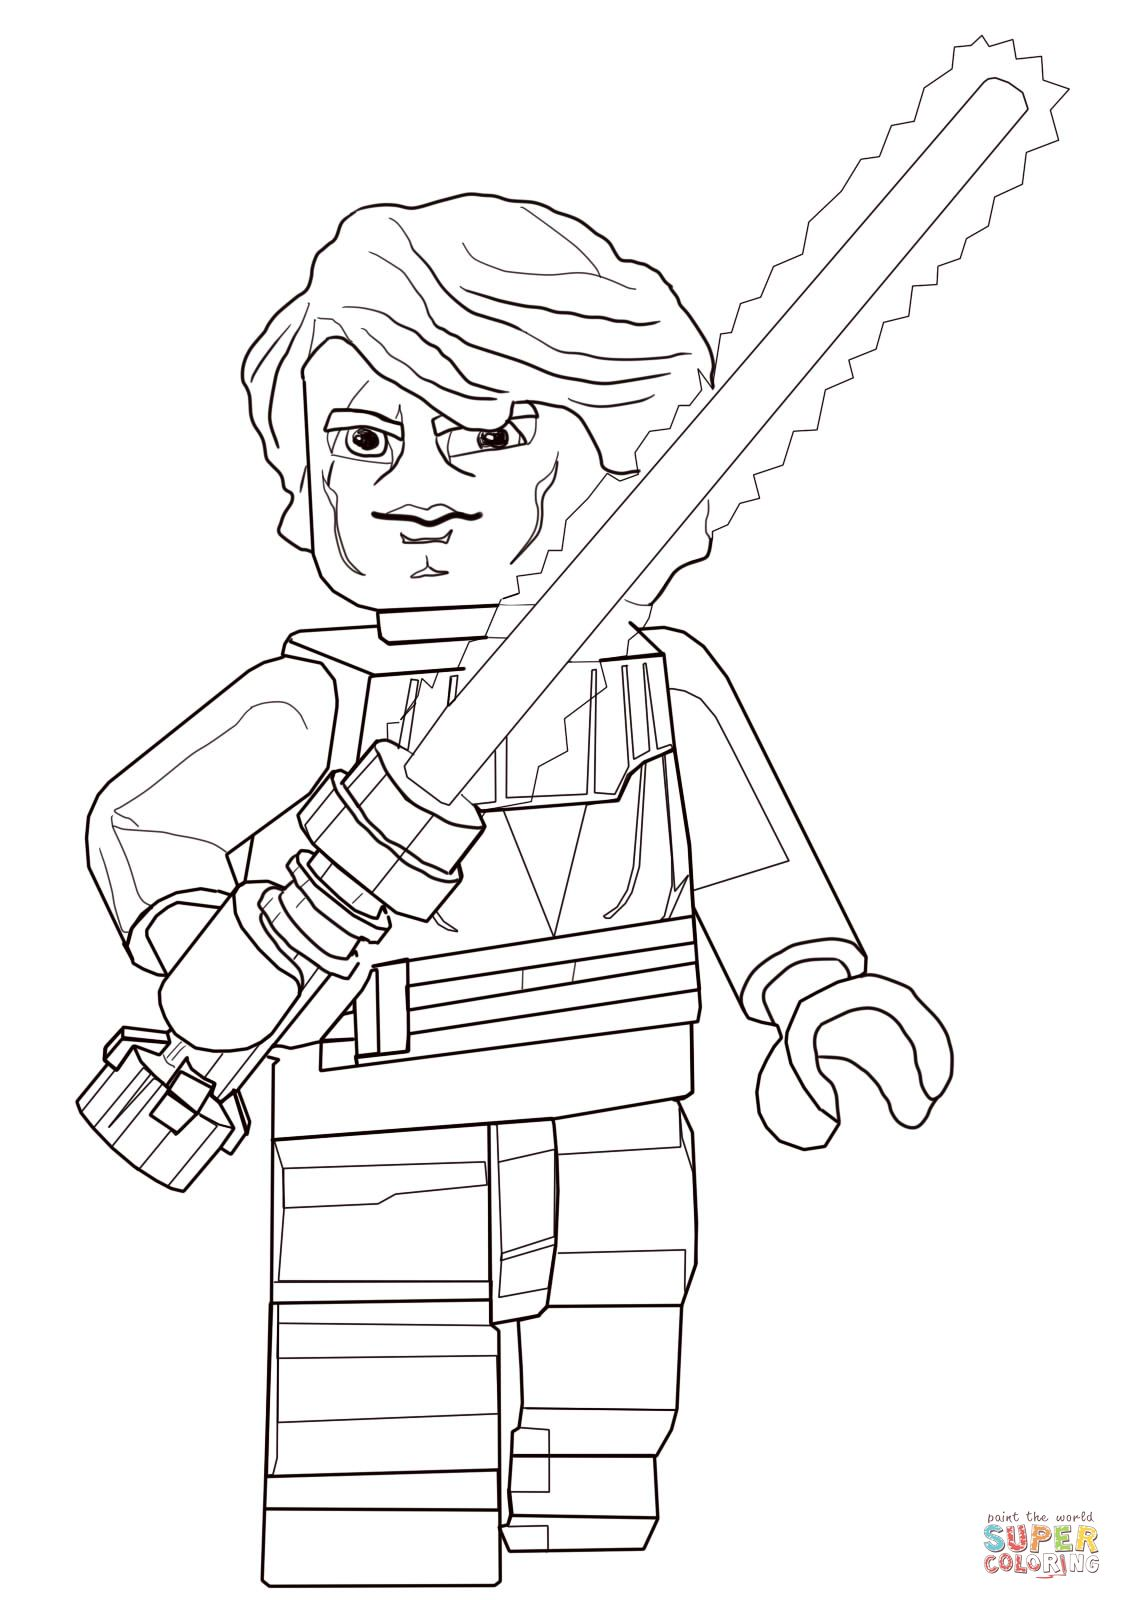 Trends For Lego Star Wars Coloring Pages Anakin Lego Star Wars Lego Coloring Pages Star Wars Colors